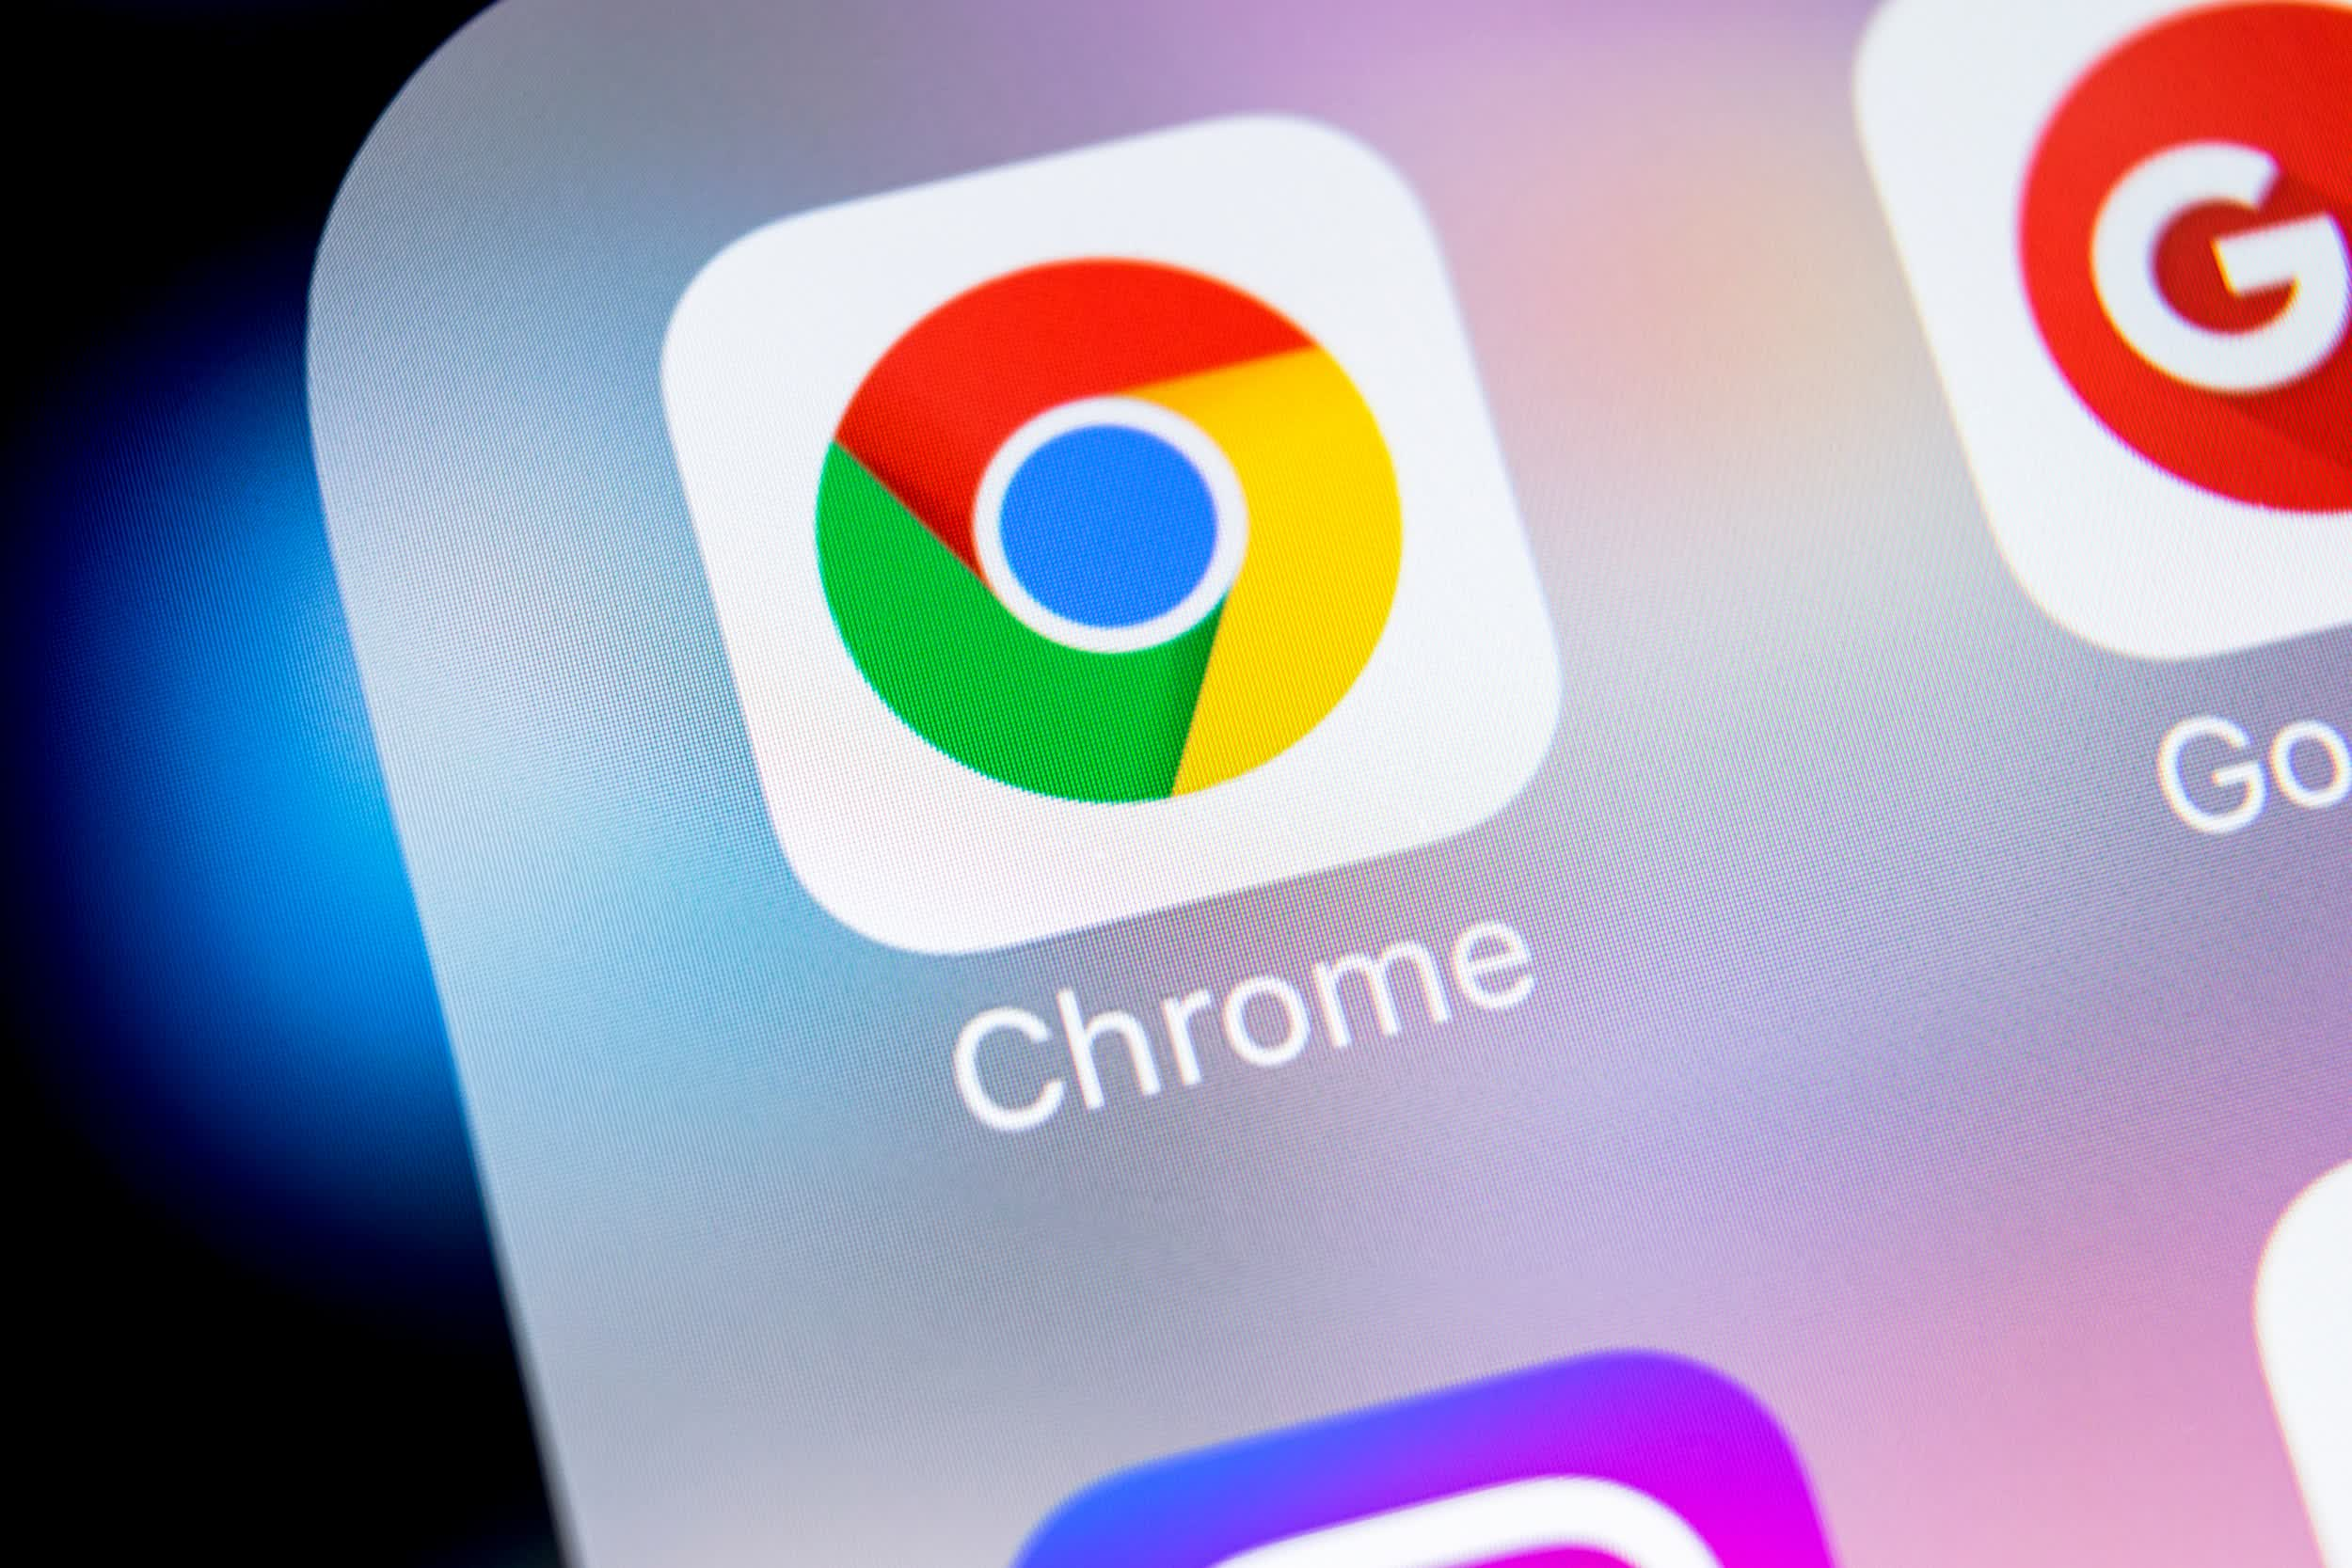 Google details performance enhancements in Chrome 89